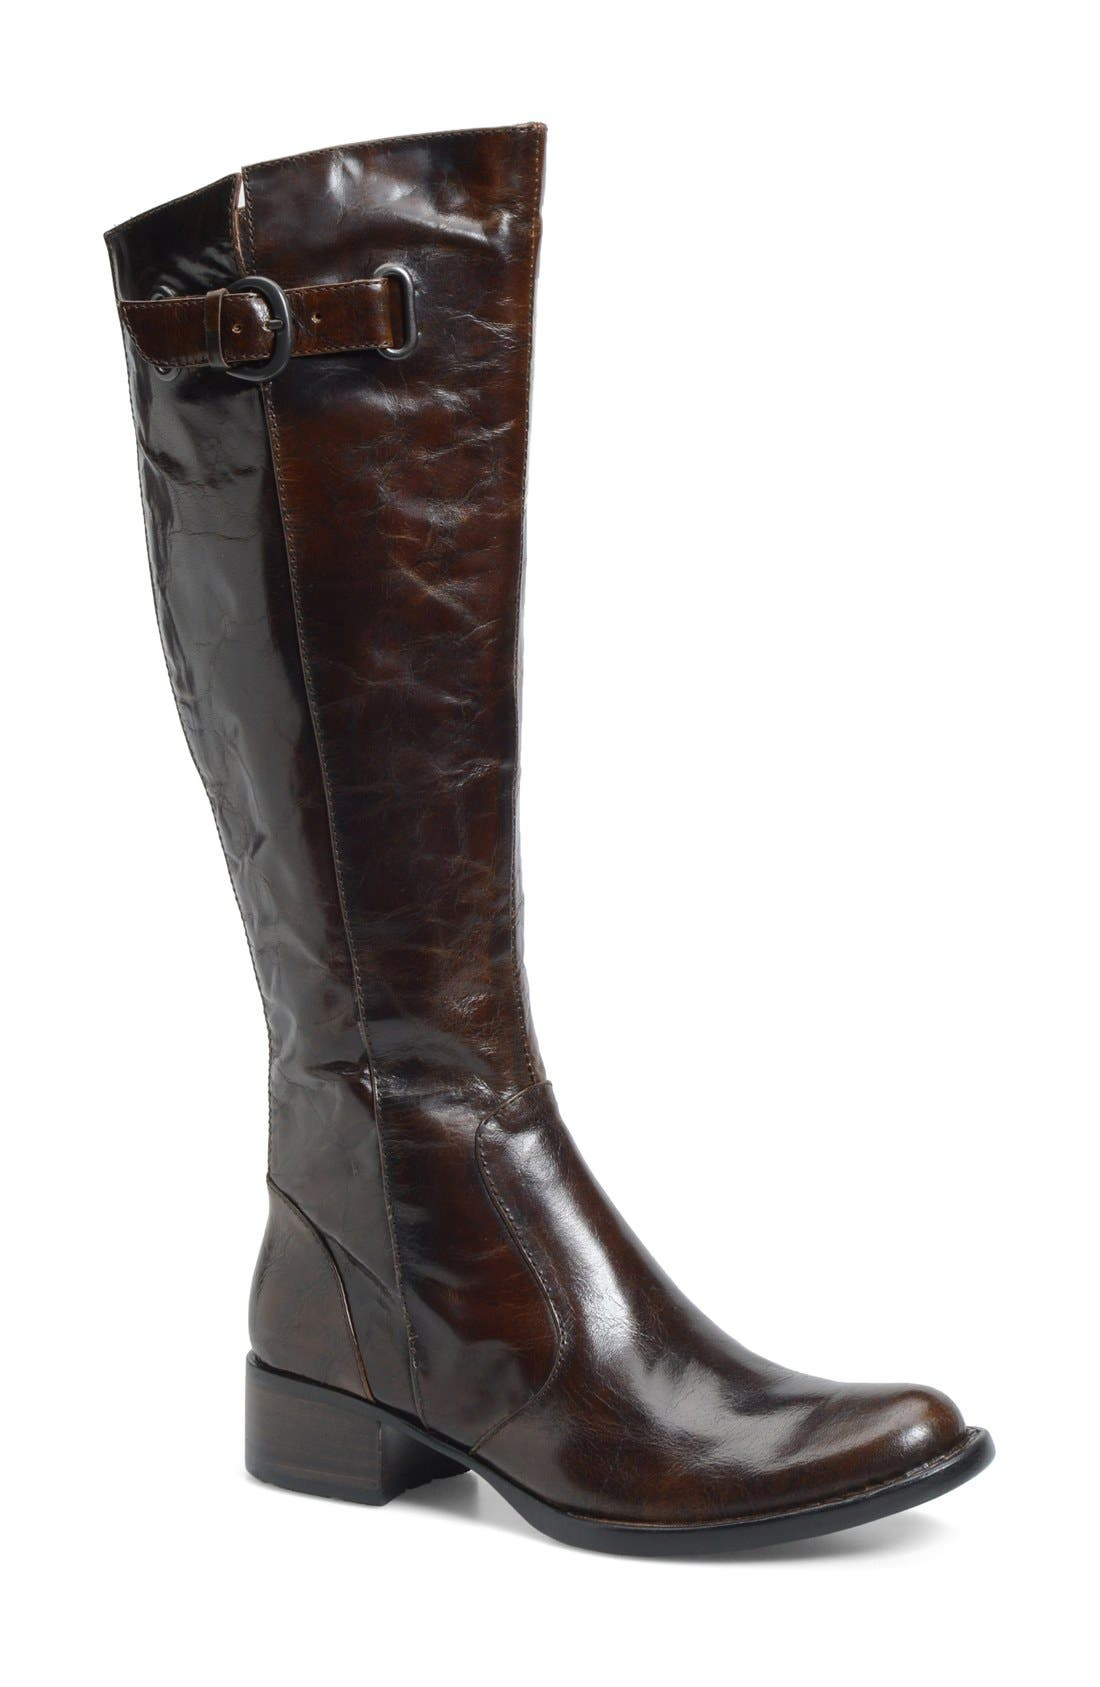 Alternate Image 1 Selected - Crown by Børn 'Roxie' Boot (Women) (Wide Calf) (Nordstrom Exclusive)